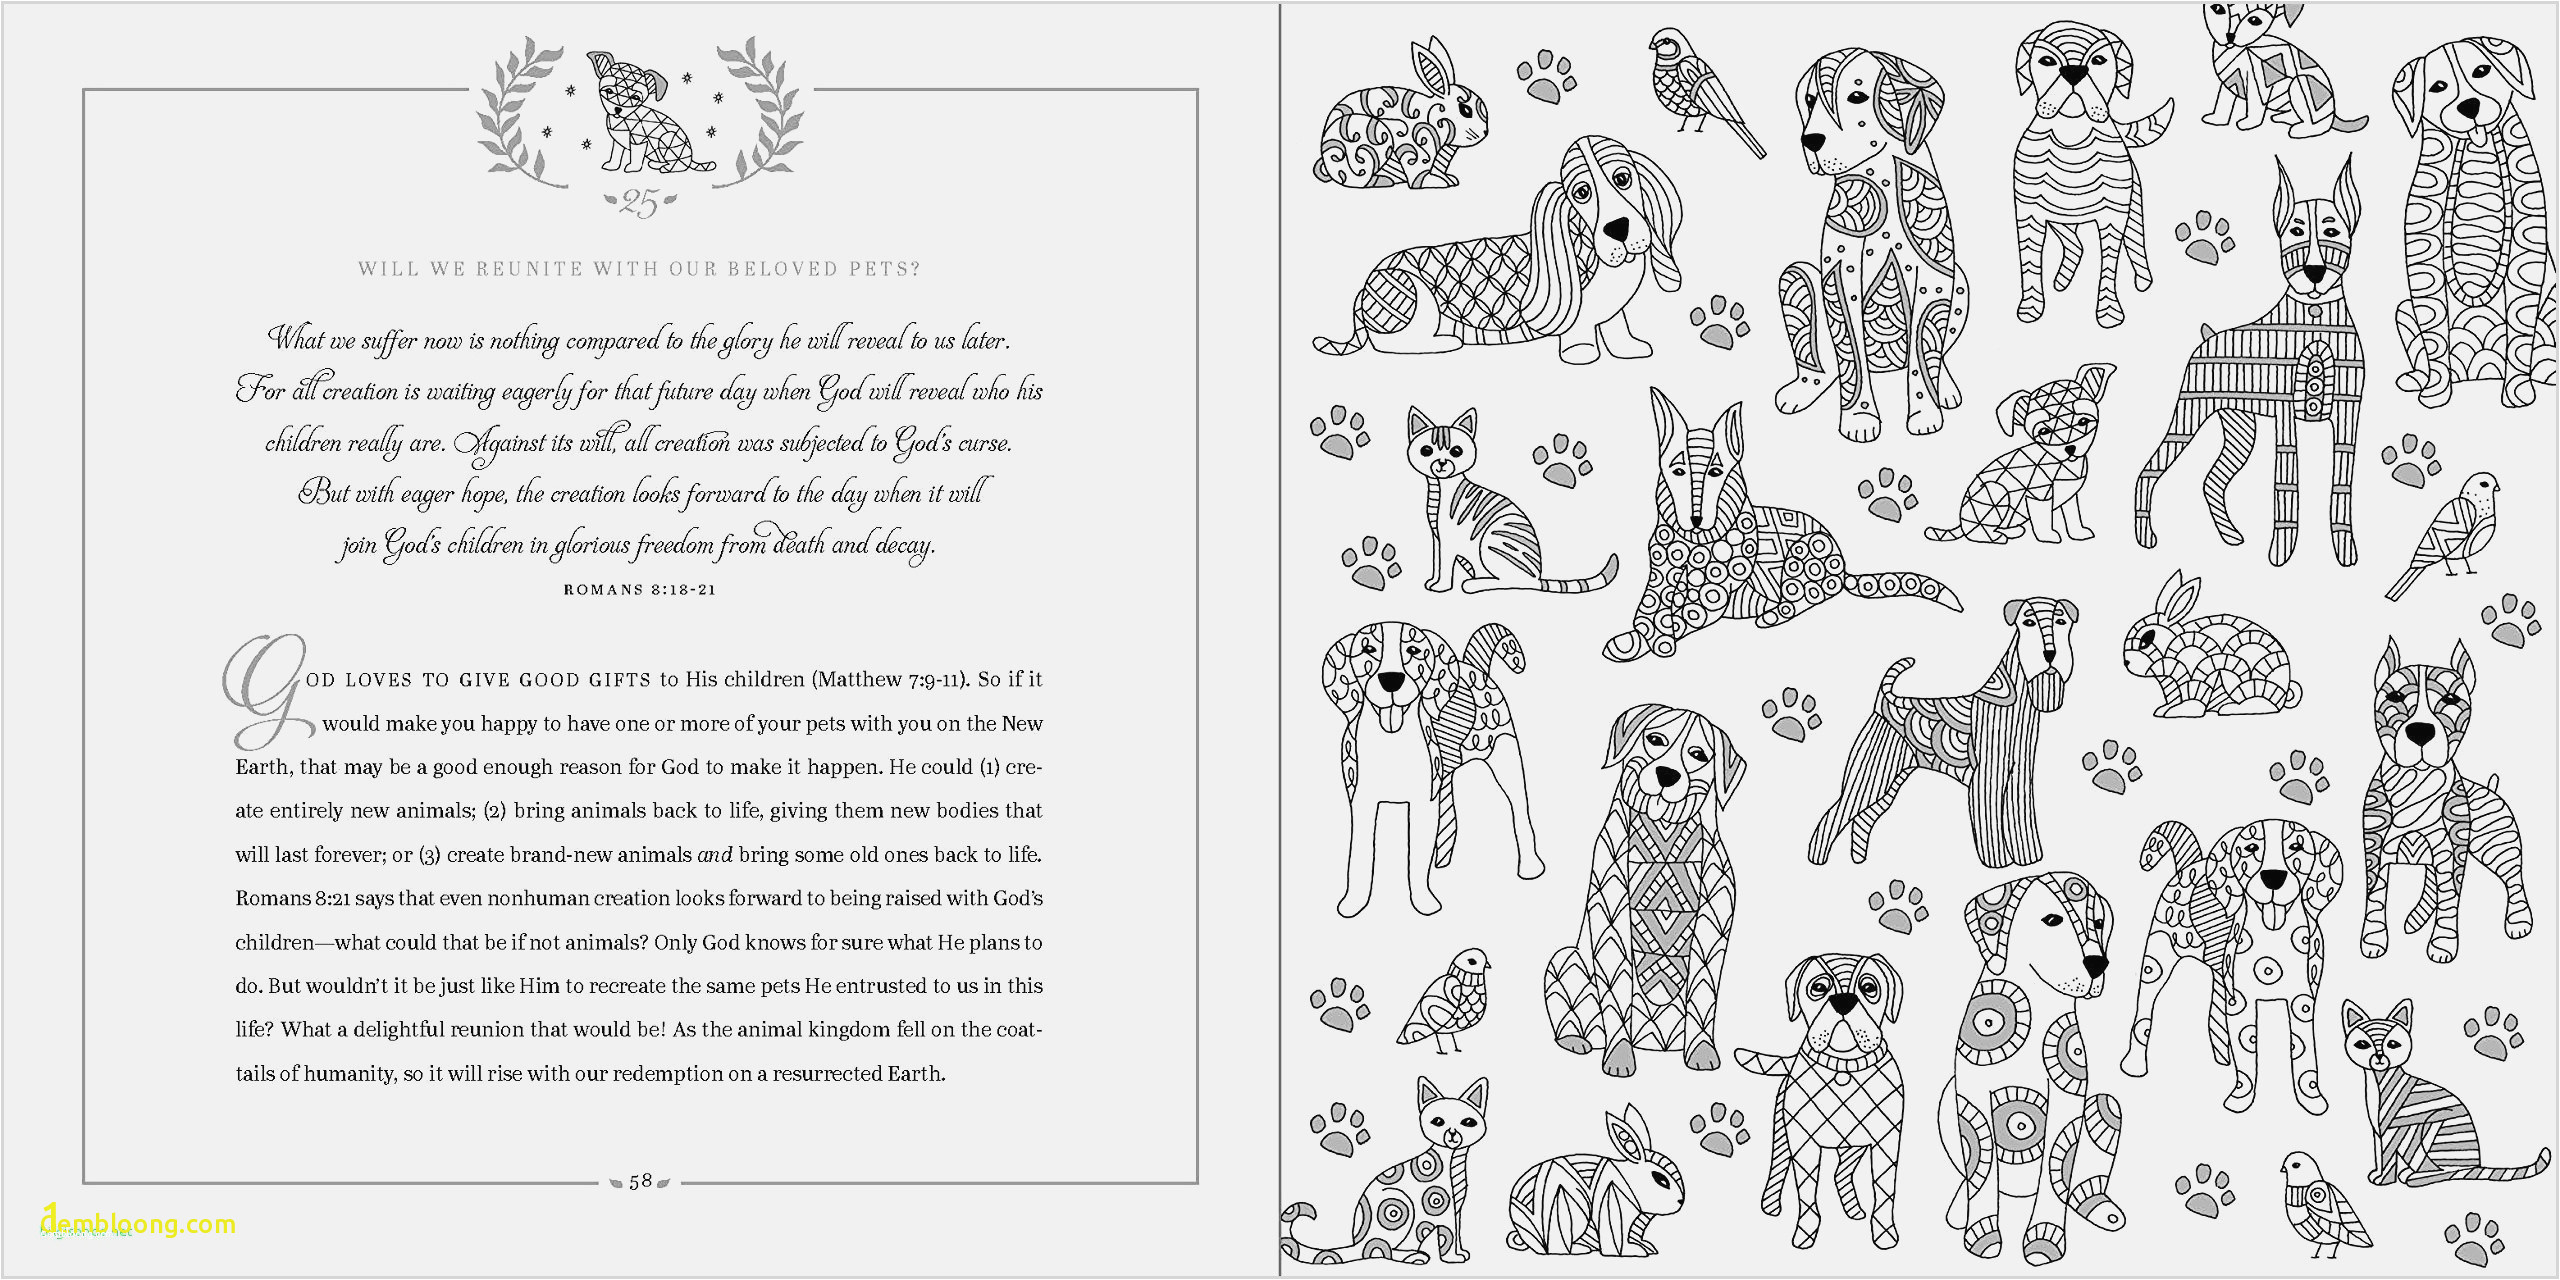 coloring pages for 2 year olds printable inspirational coloring pages coloring pages for 9 year olds coloring of coloring pages for 2 year olds printable